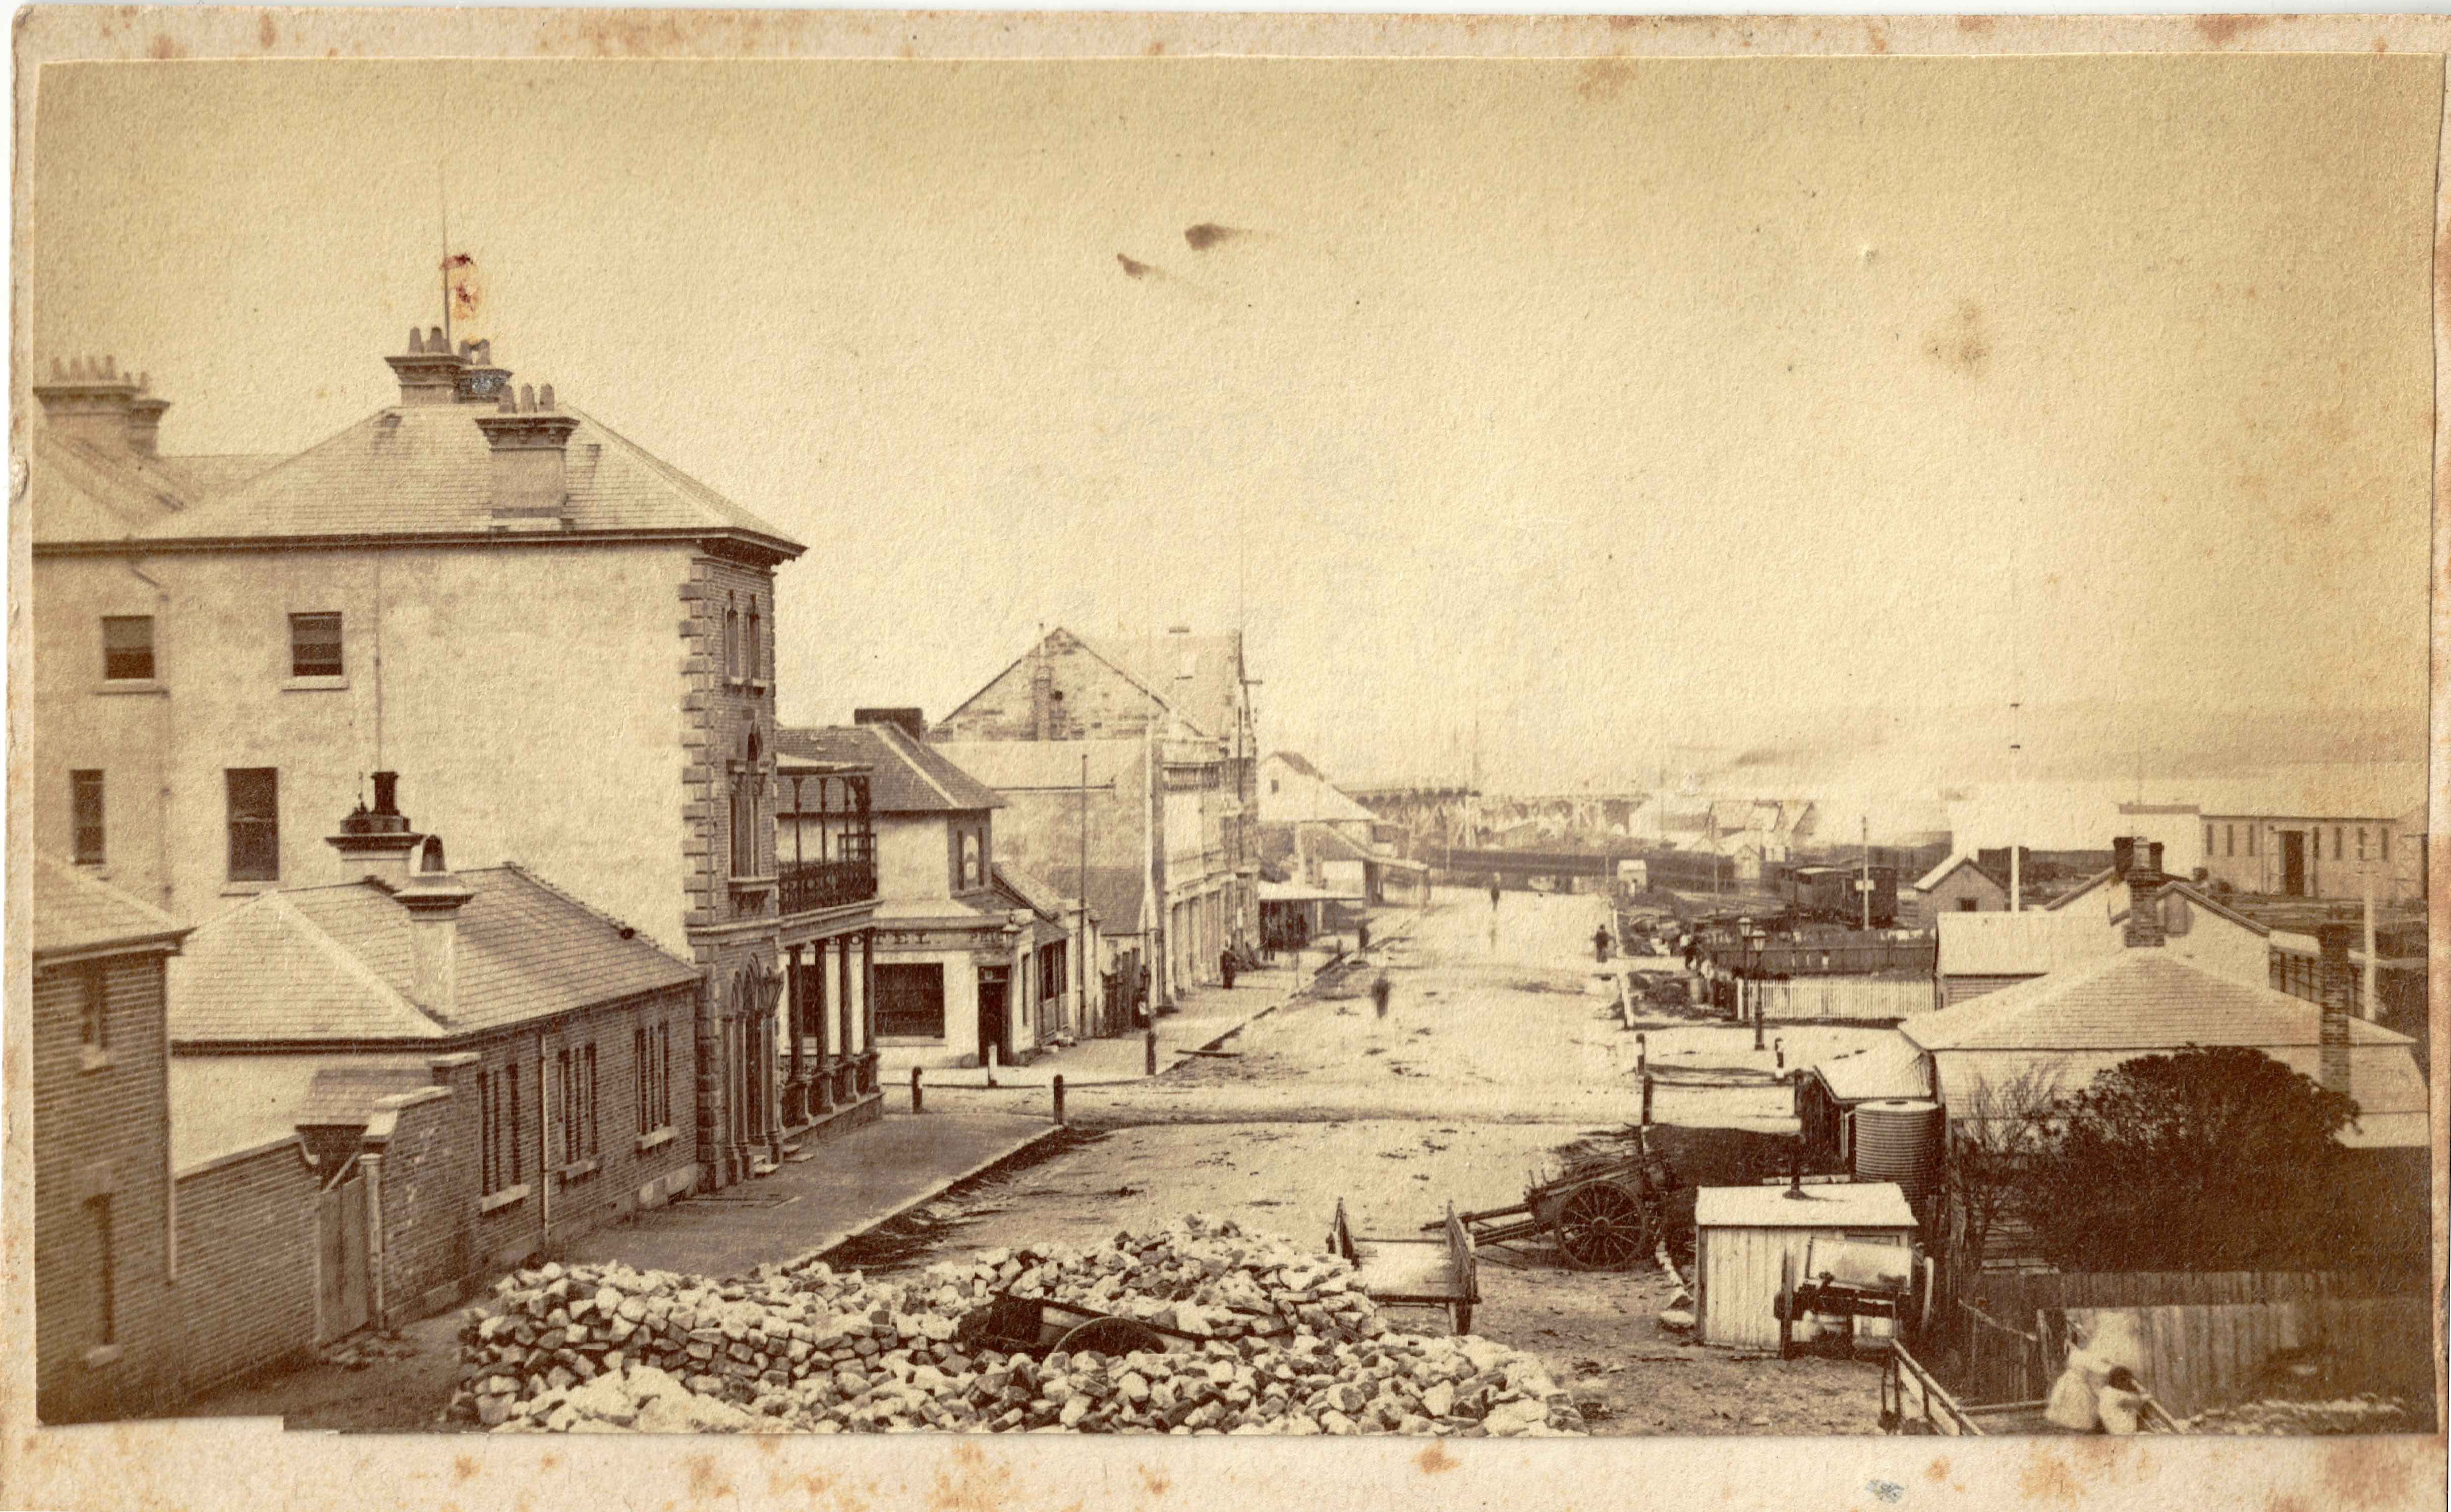 Newcastle Street Scene, circa 22 October 1870 - 1 December 1870 (Photo Credit: Digitised by Anne Glennie from Glennie Family Albums) Click for larger view